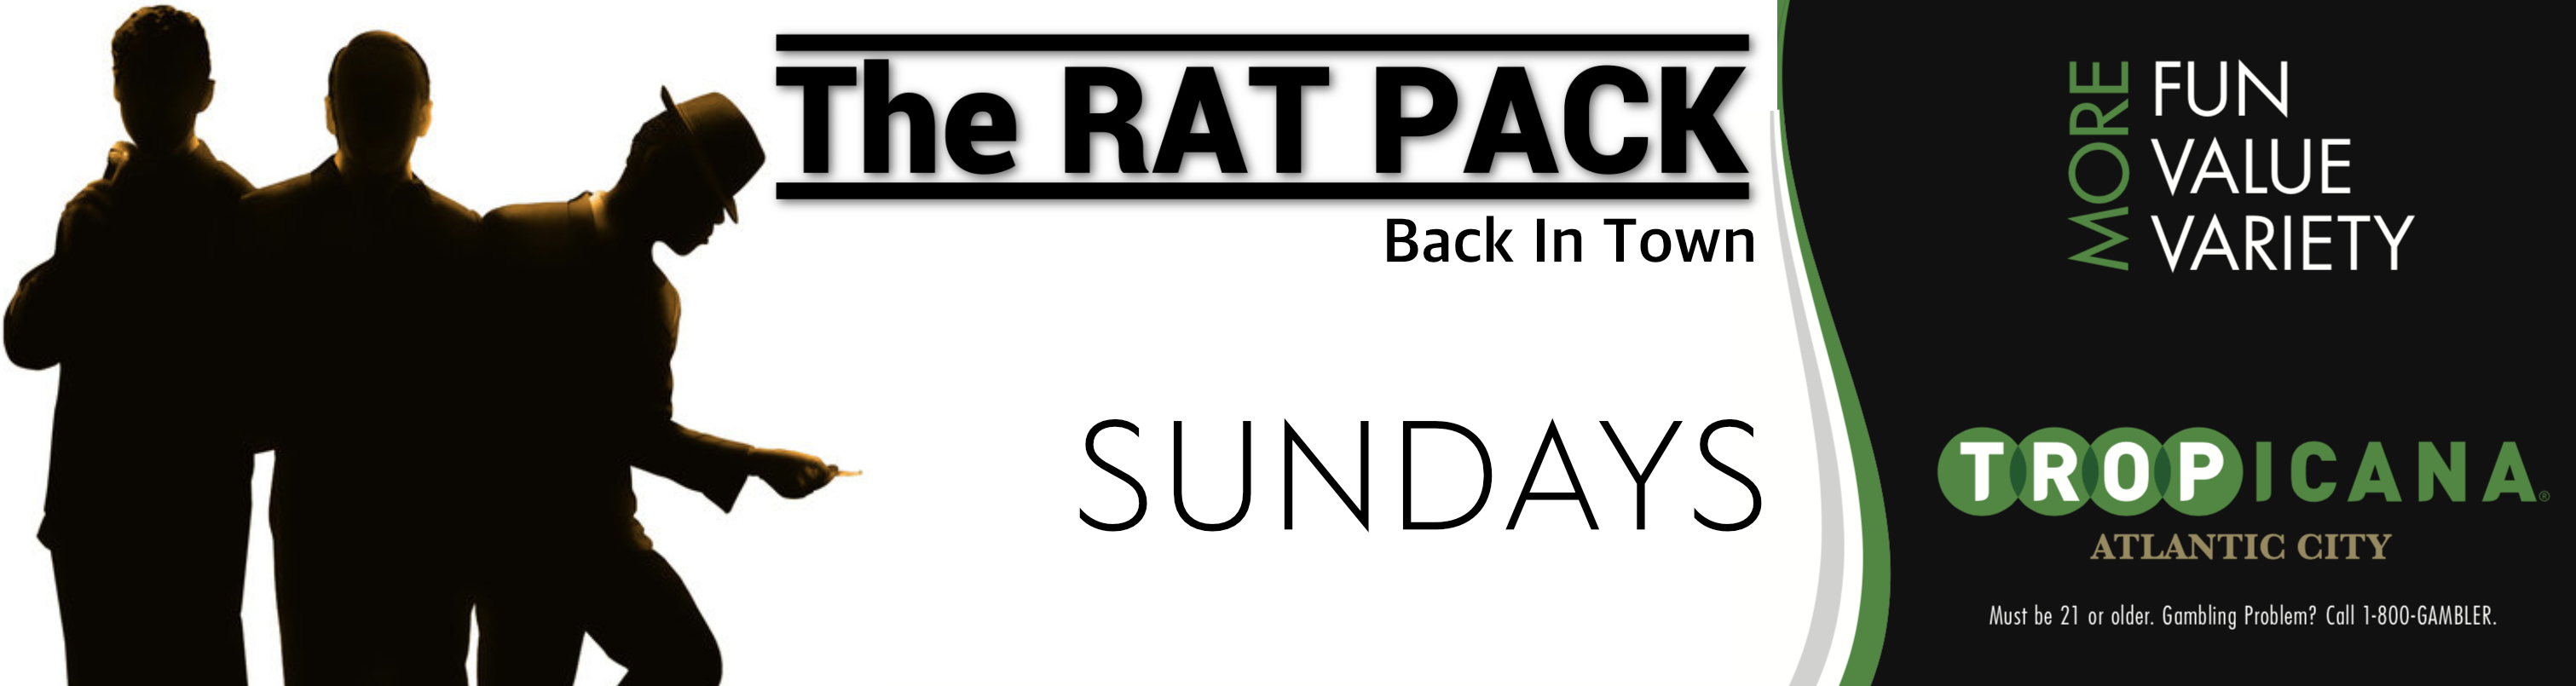 rat pack back in town